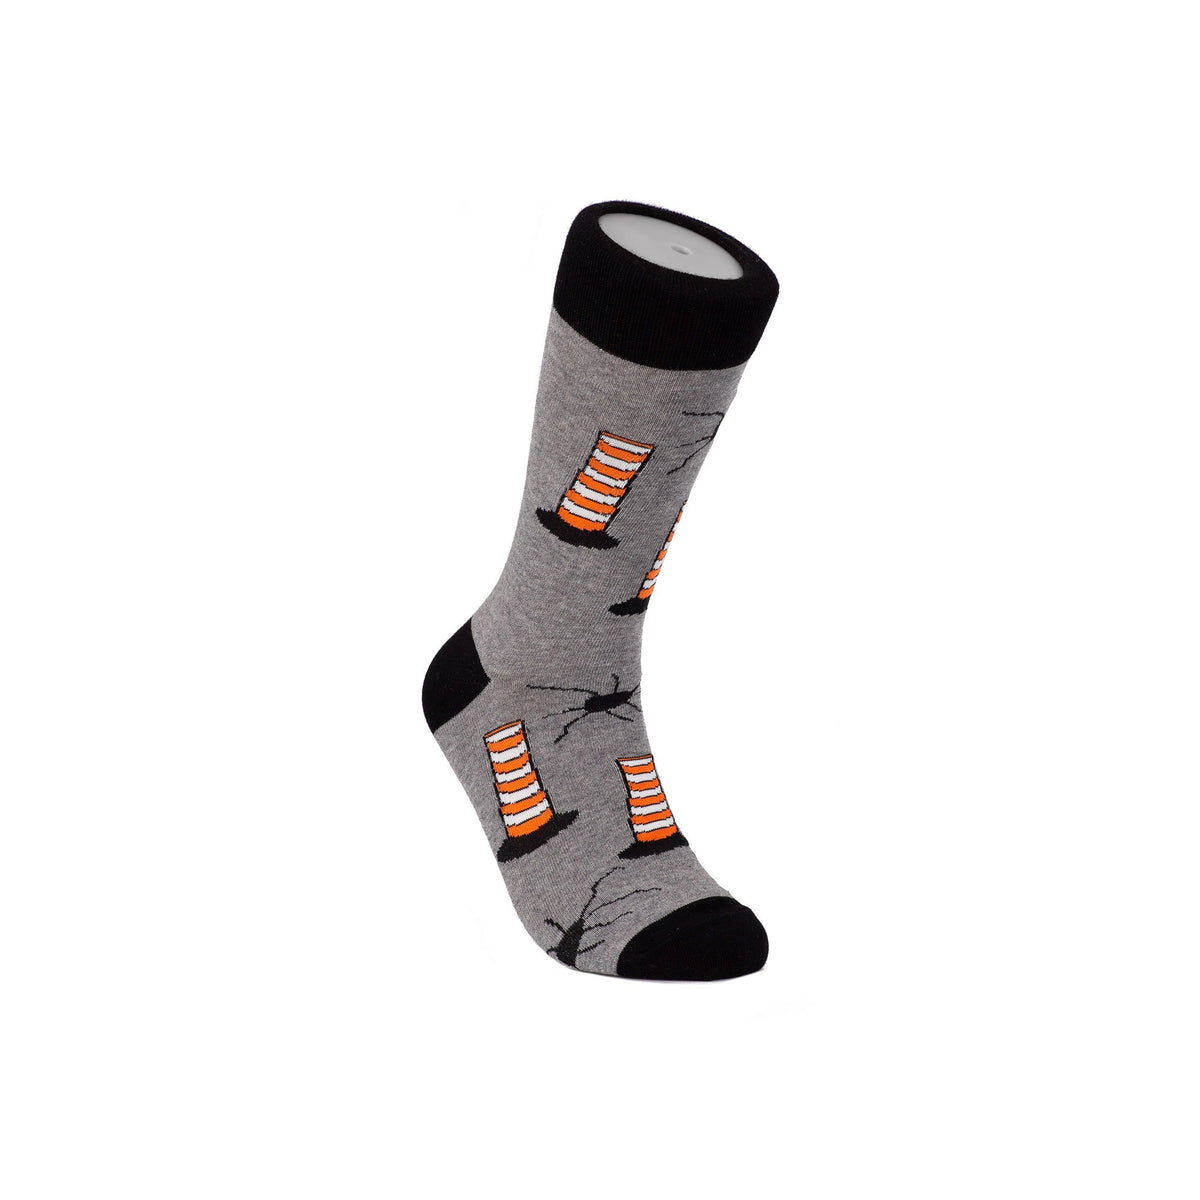 Montreal Construction Cone Socks